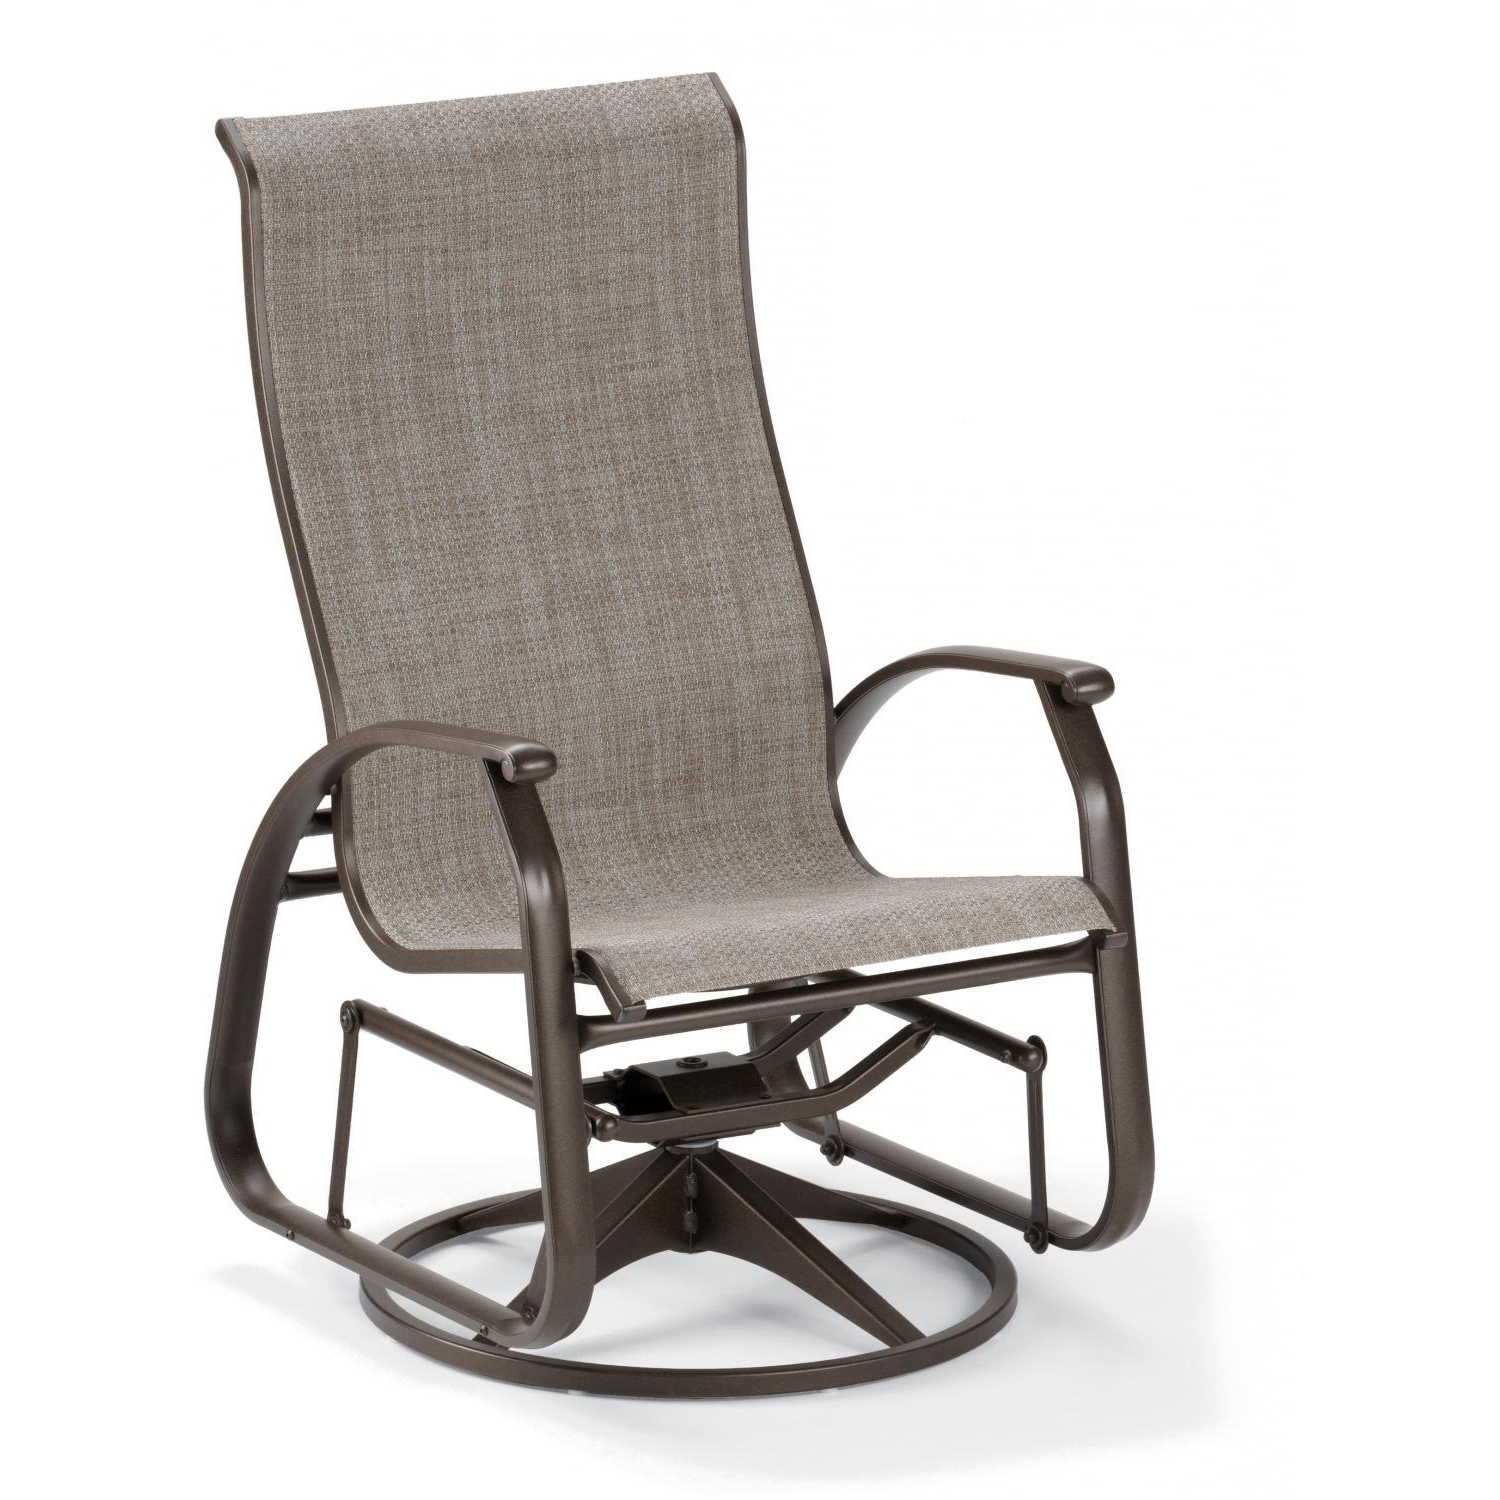 Patio Rocking Chairs And Gliders Regarding Popular Outdoor Rockers And Gliders (View 12 of 20)